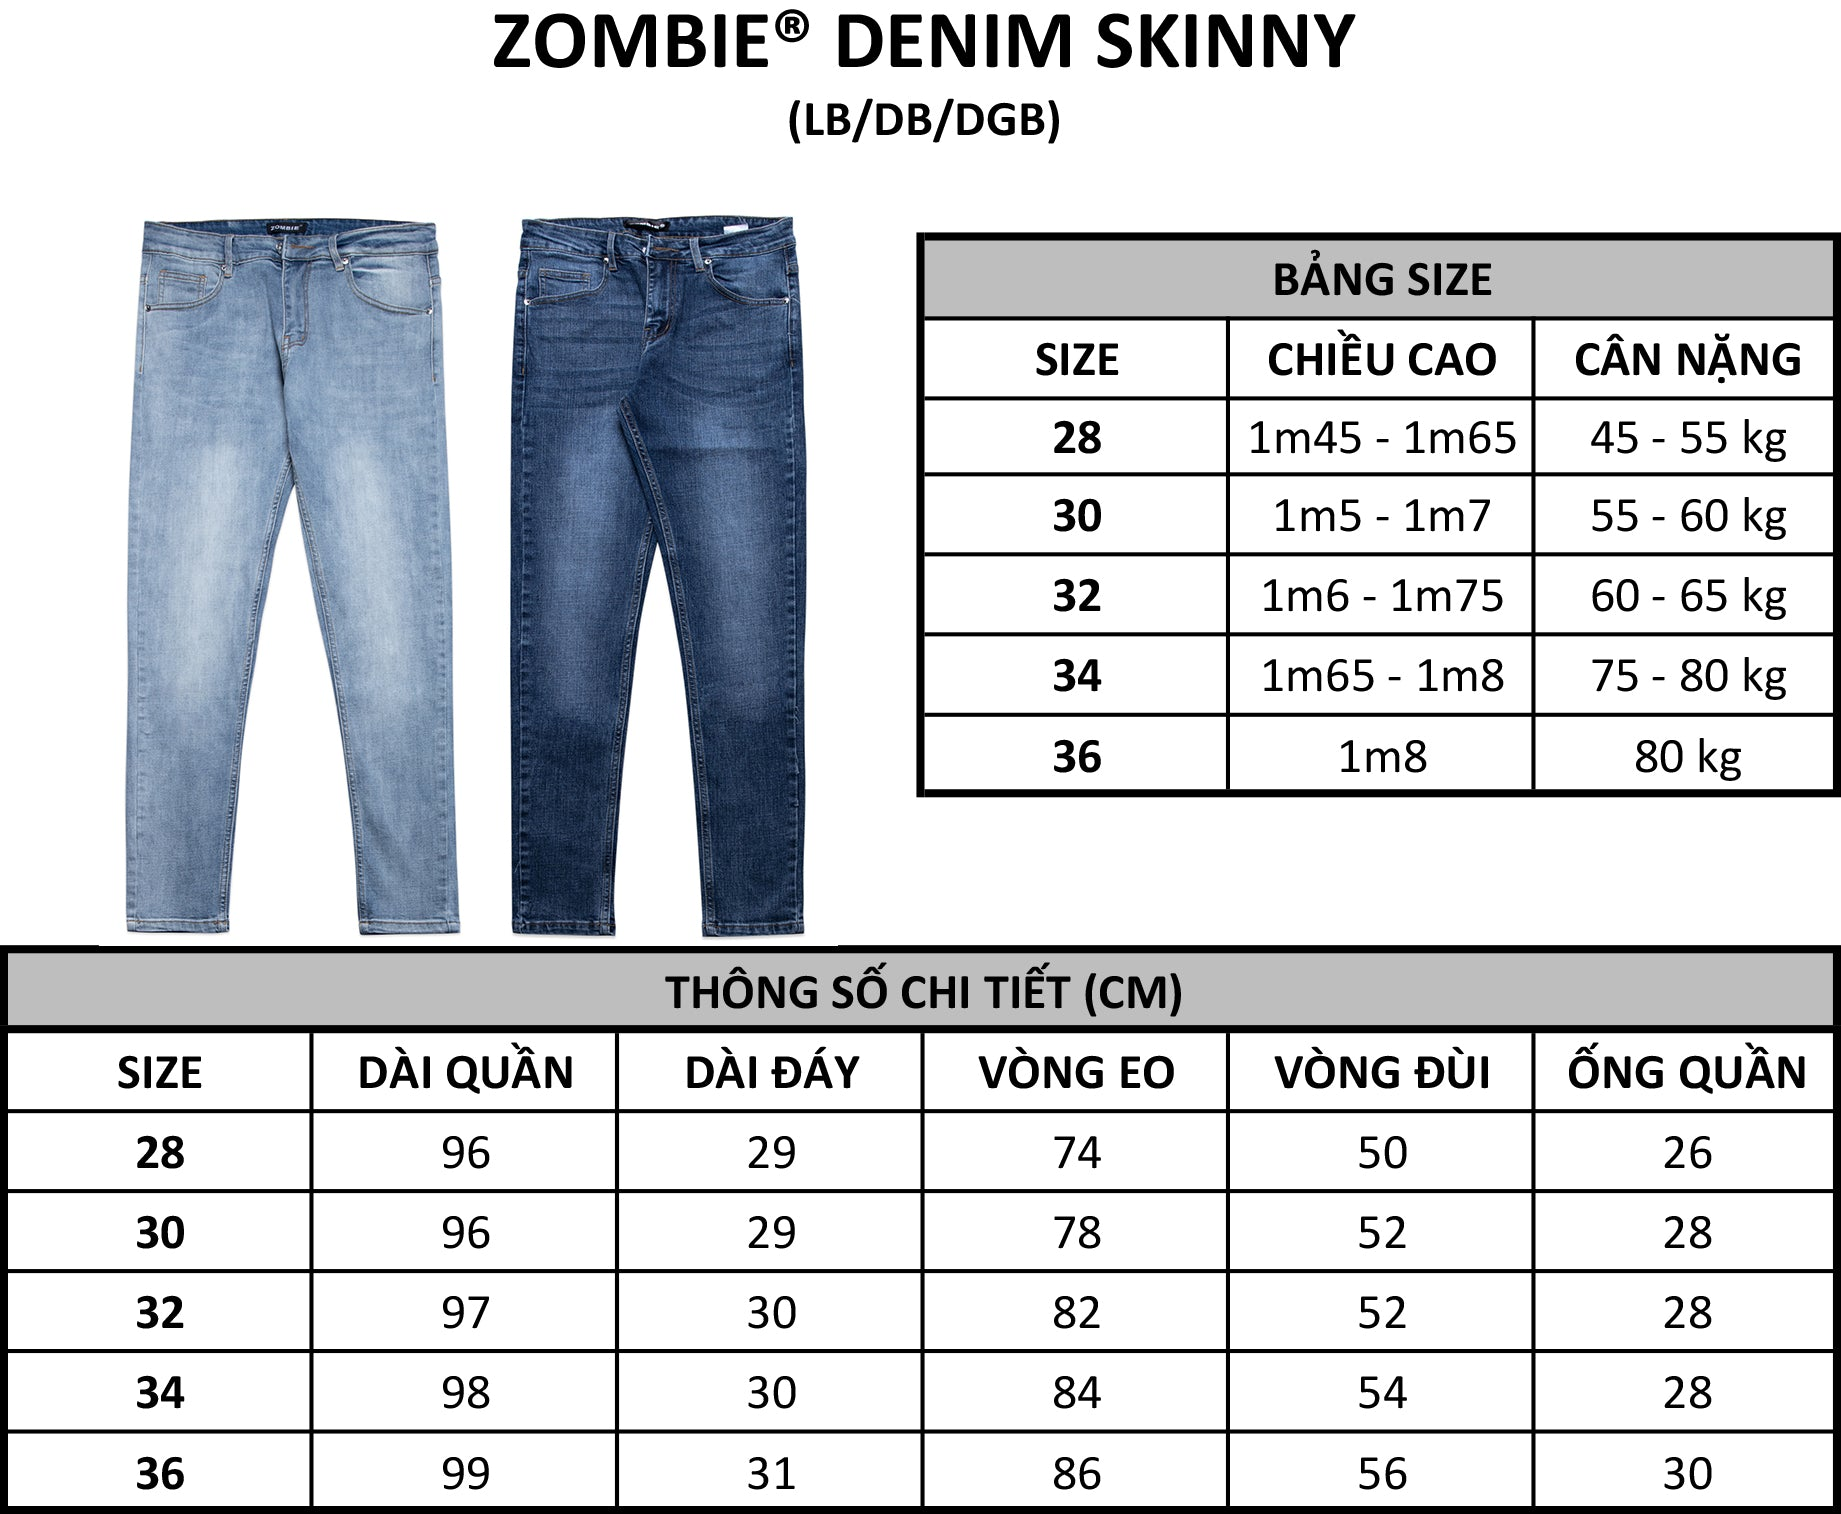 ZOMBIE® Denim Skinny DB